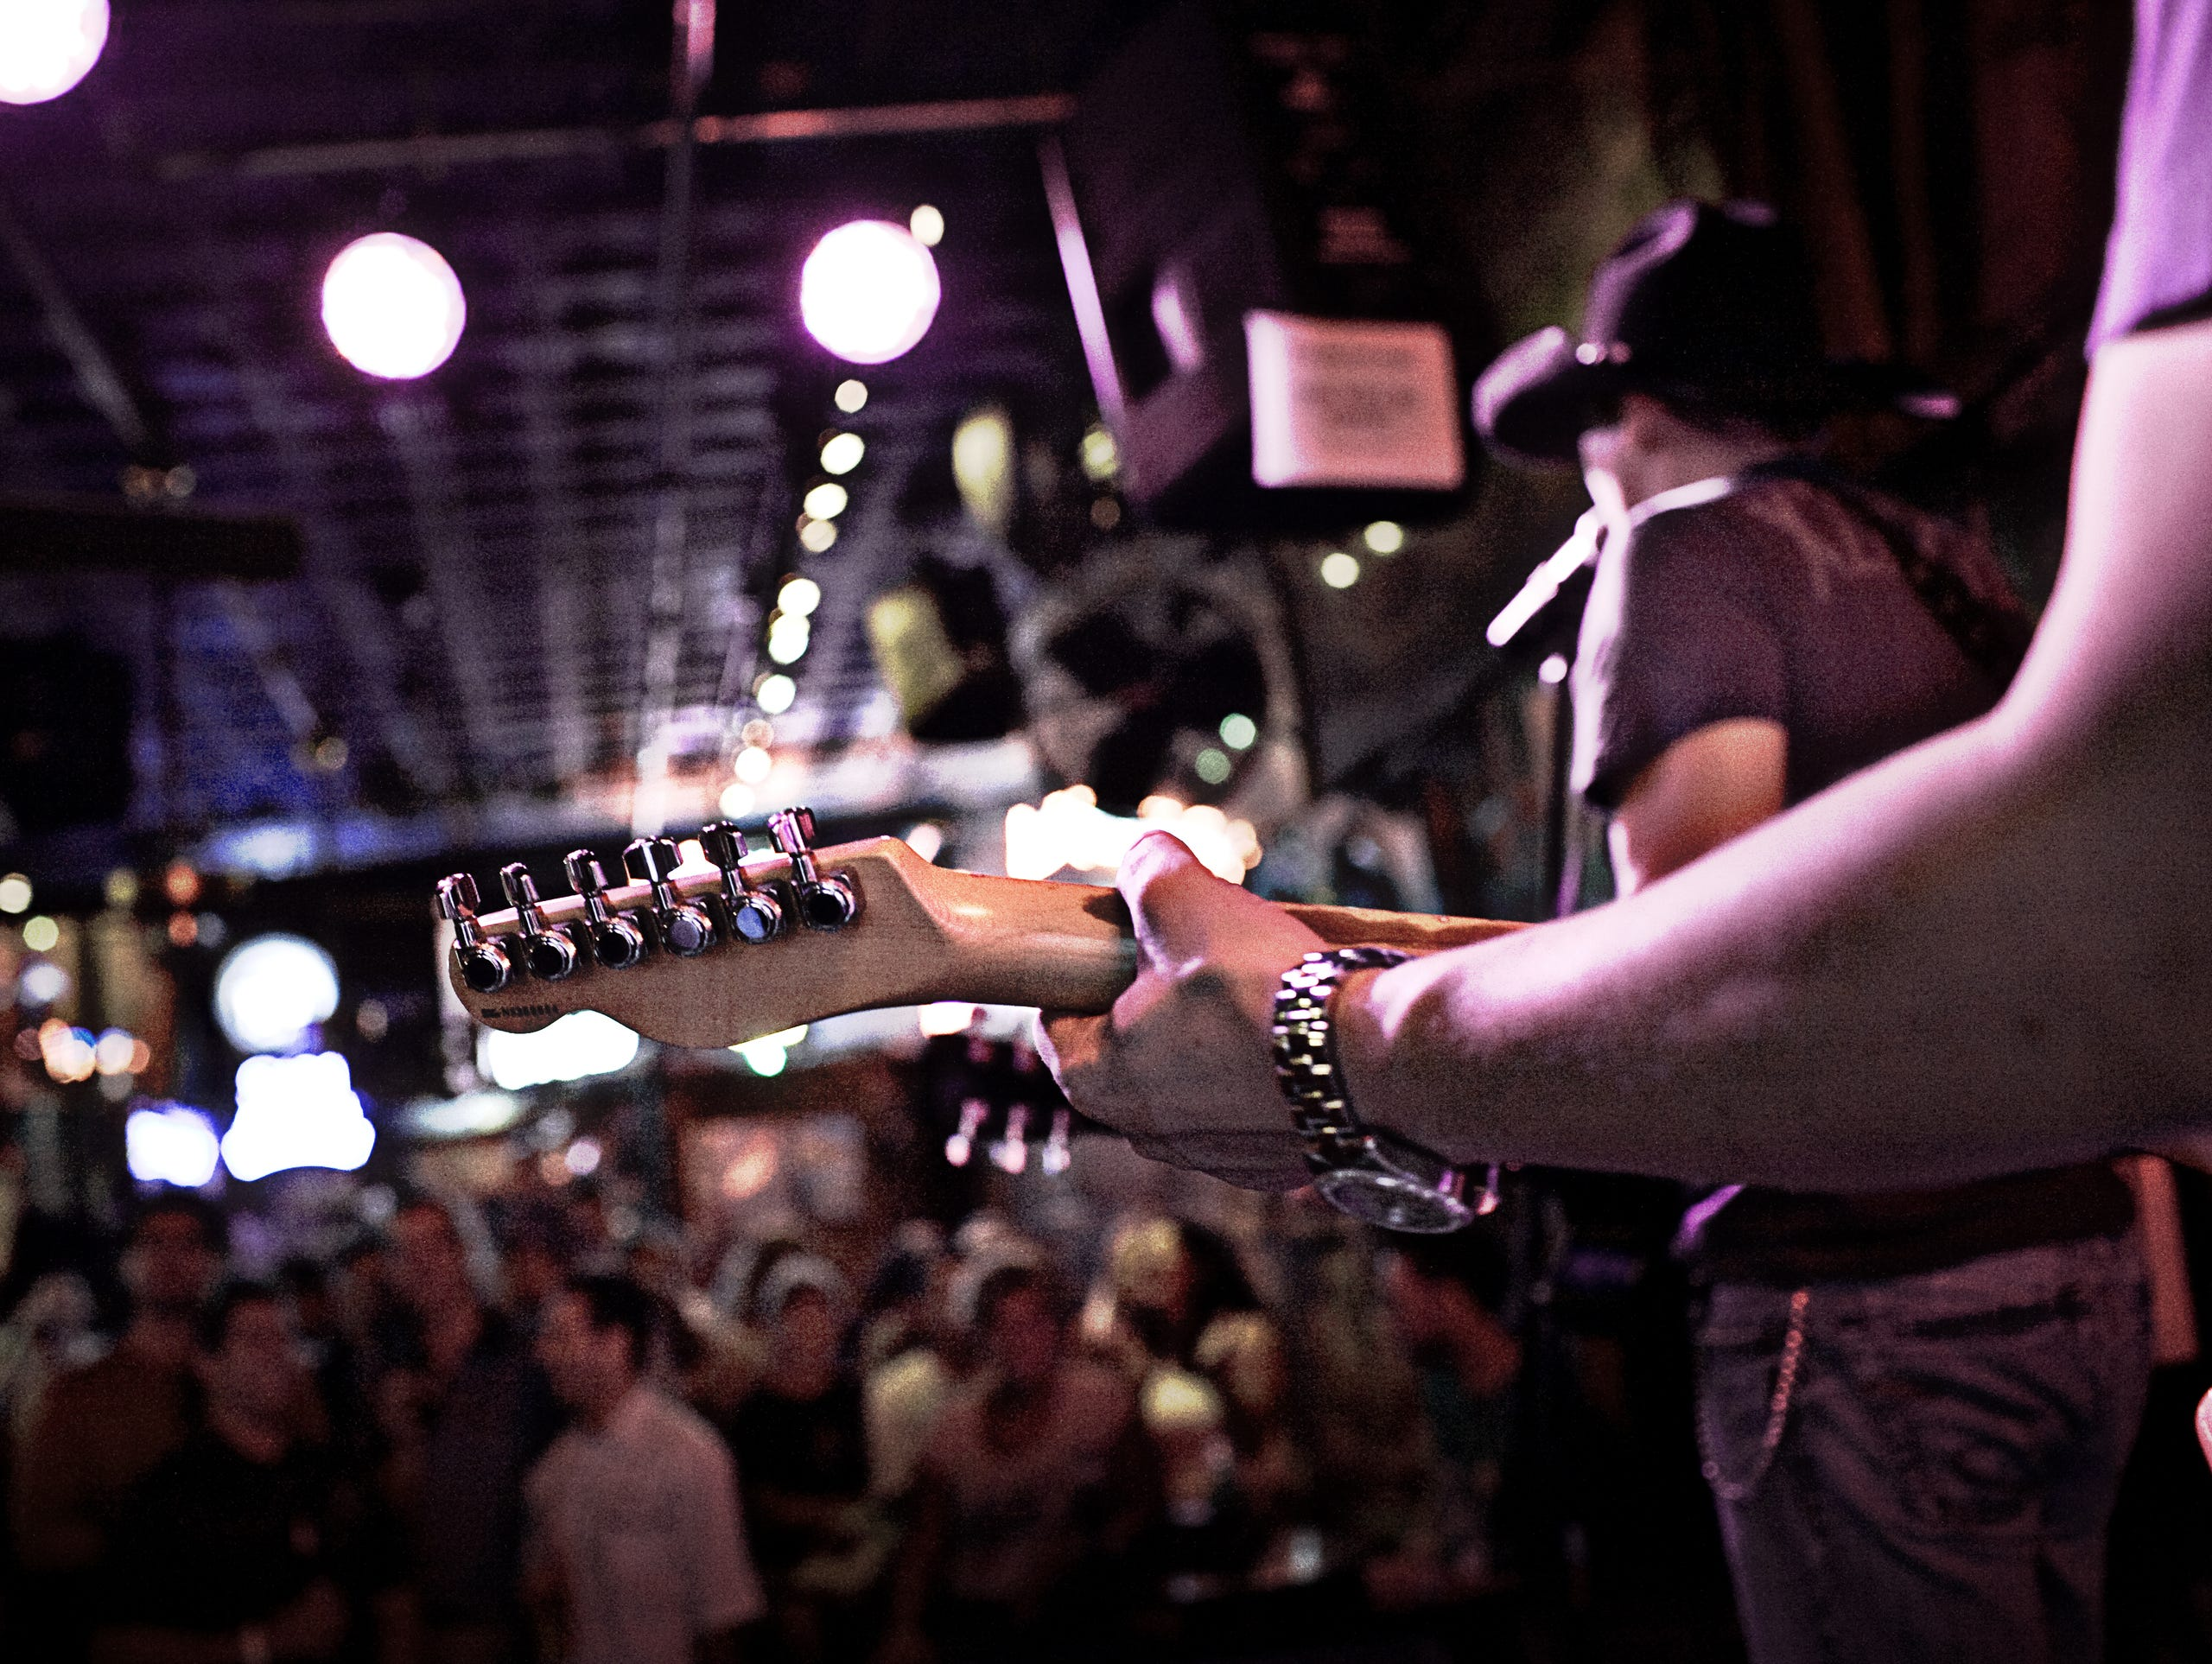 Visitors enjoy live music at one of Nashville's many clubs.